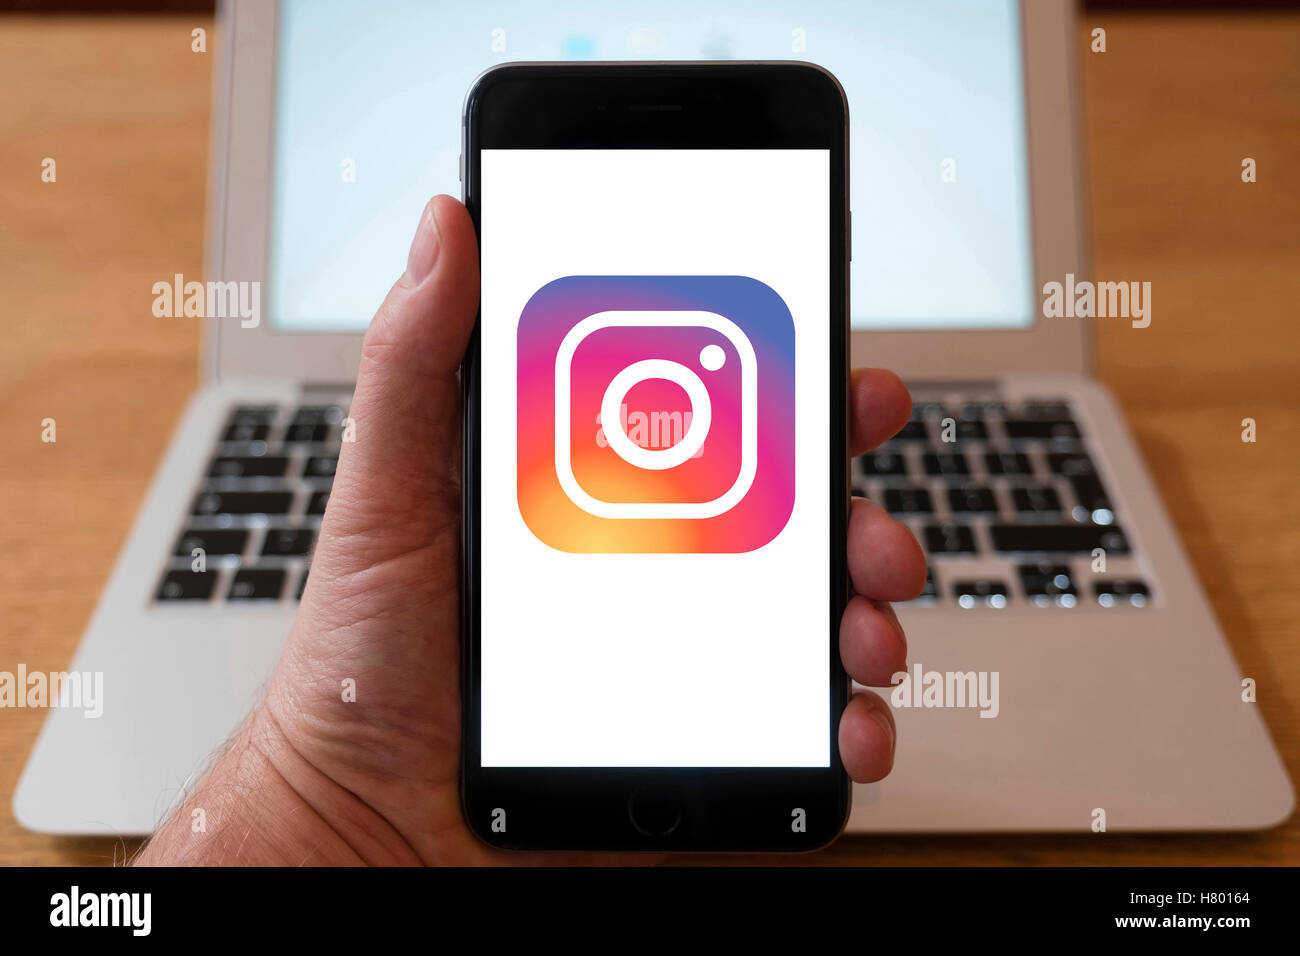 Using iPhone smartphone to display logo of Instagram, social media and photo sharing service - Stock Image